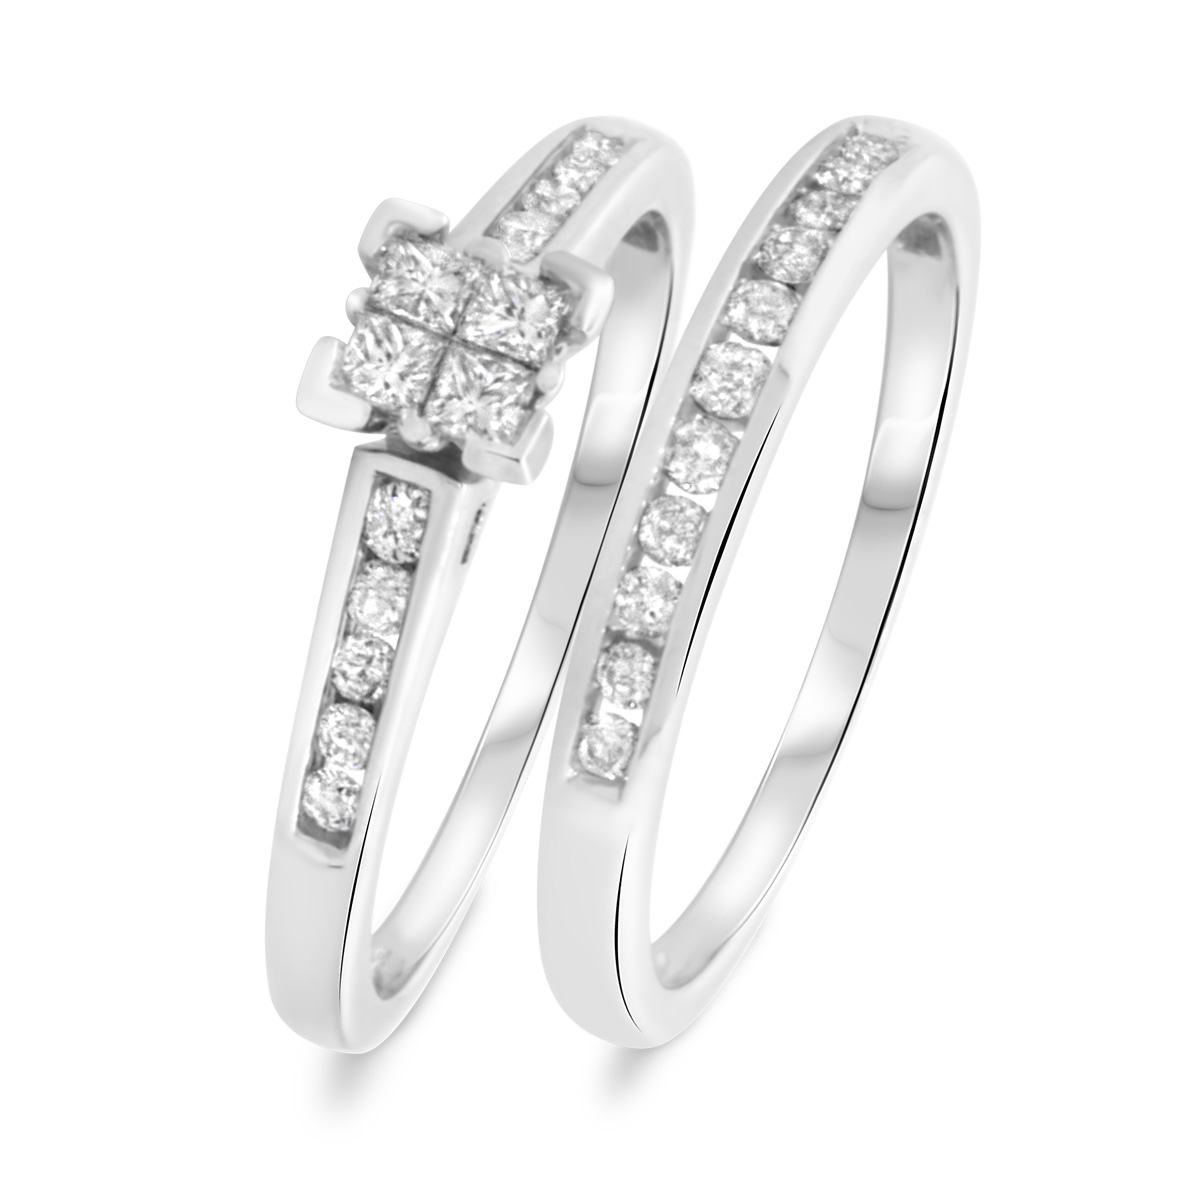 1/2 CT. T.W. Princess, Round Cut Diamond Ladies Bridal Wedding Ring Set 10K White Gold